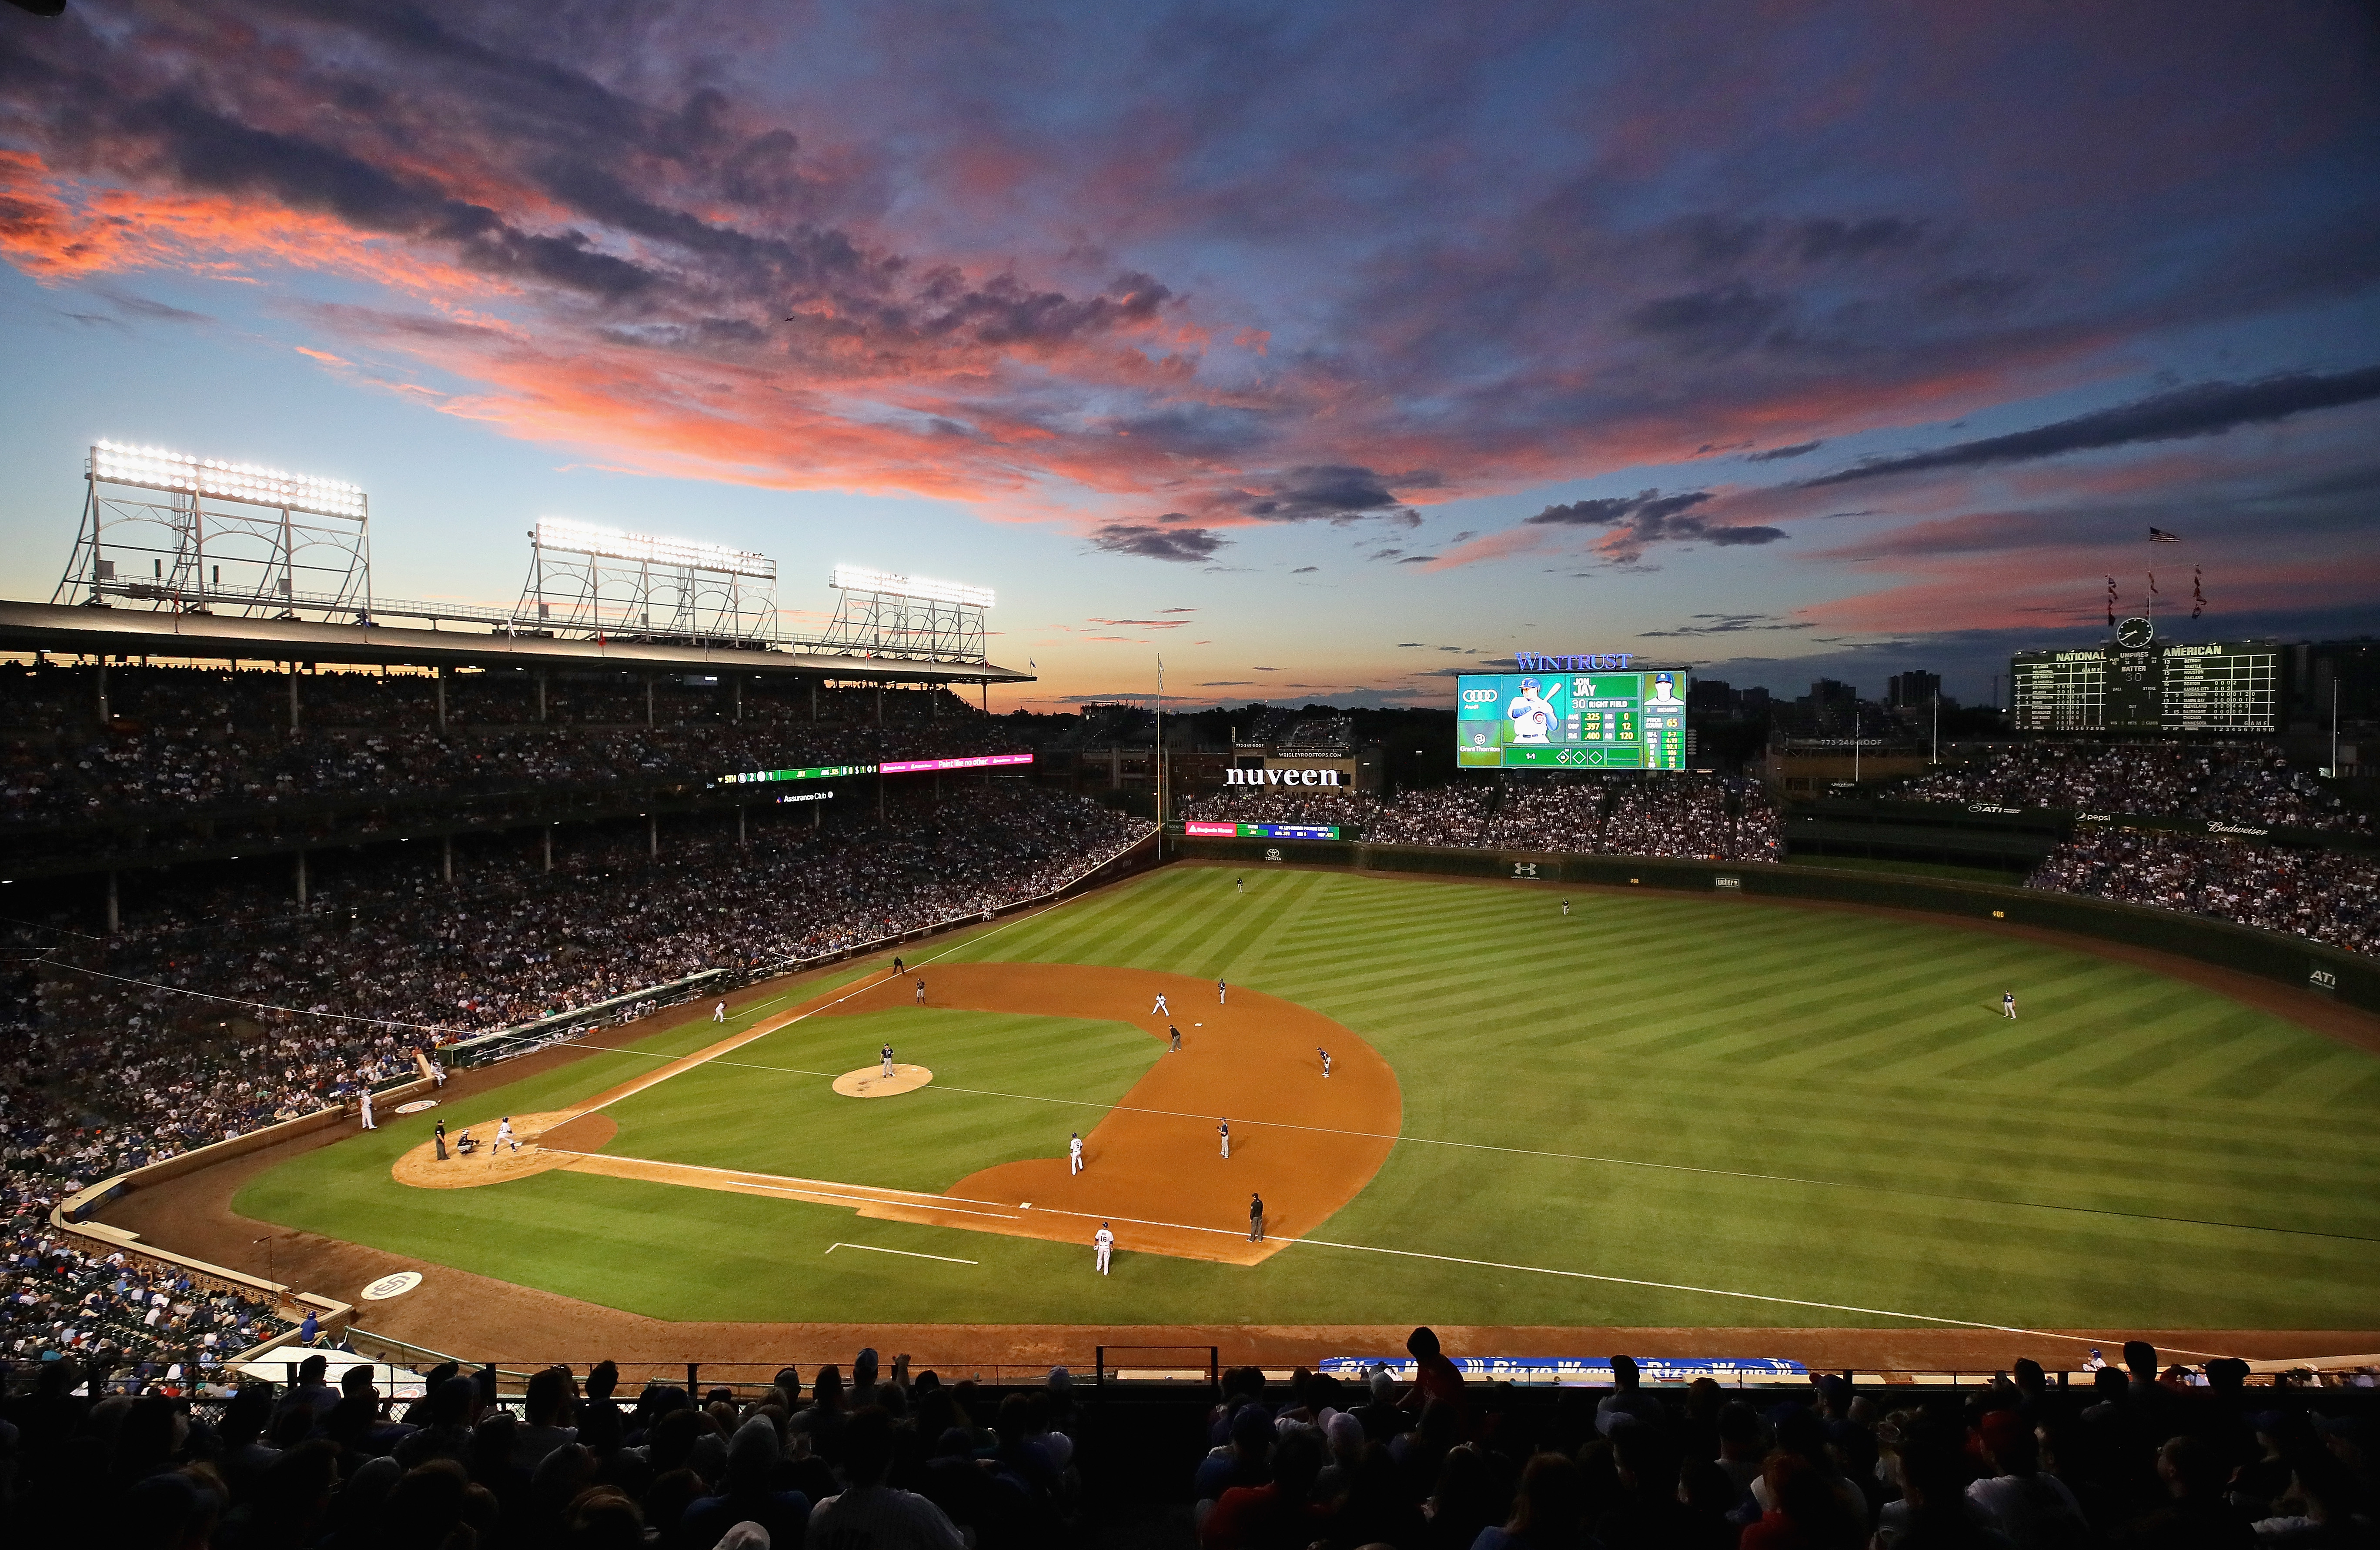 CHICAGO, IL - JUNE 19:  A general view of Wrigley Field at sunset as the Chicago Cubs take on the San Diego Padres on June 19, 2017 in Chicago, Illinois.  (Photo by Jonathan Daniel/Getty Images)